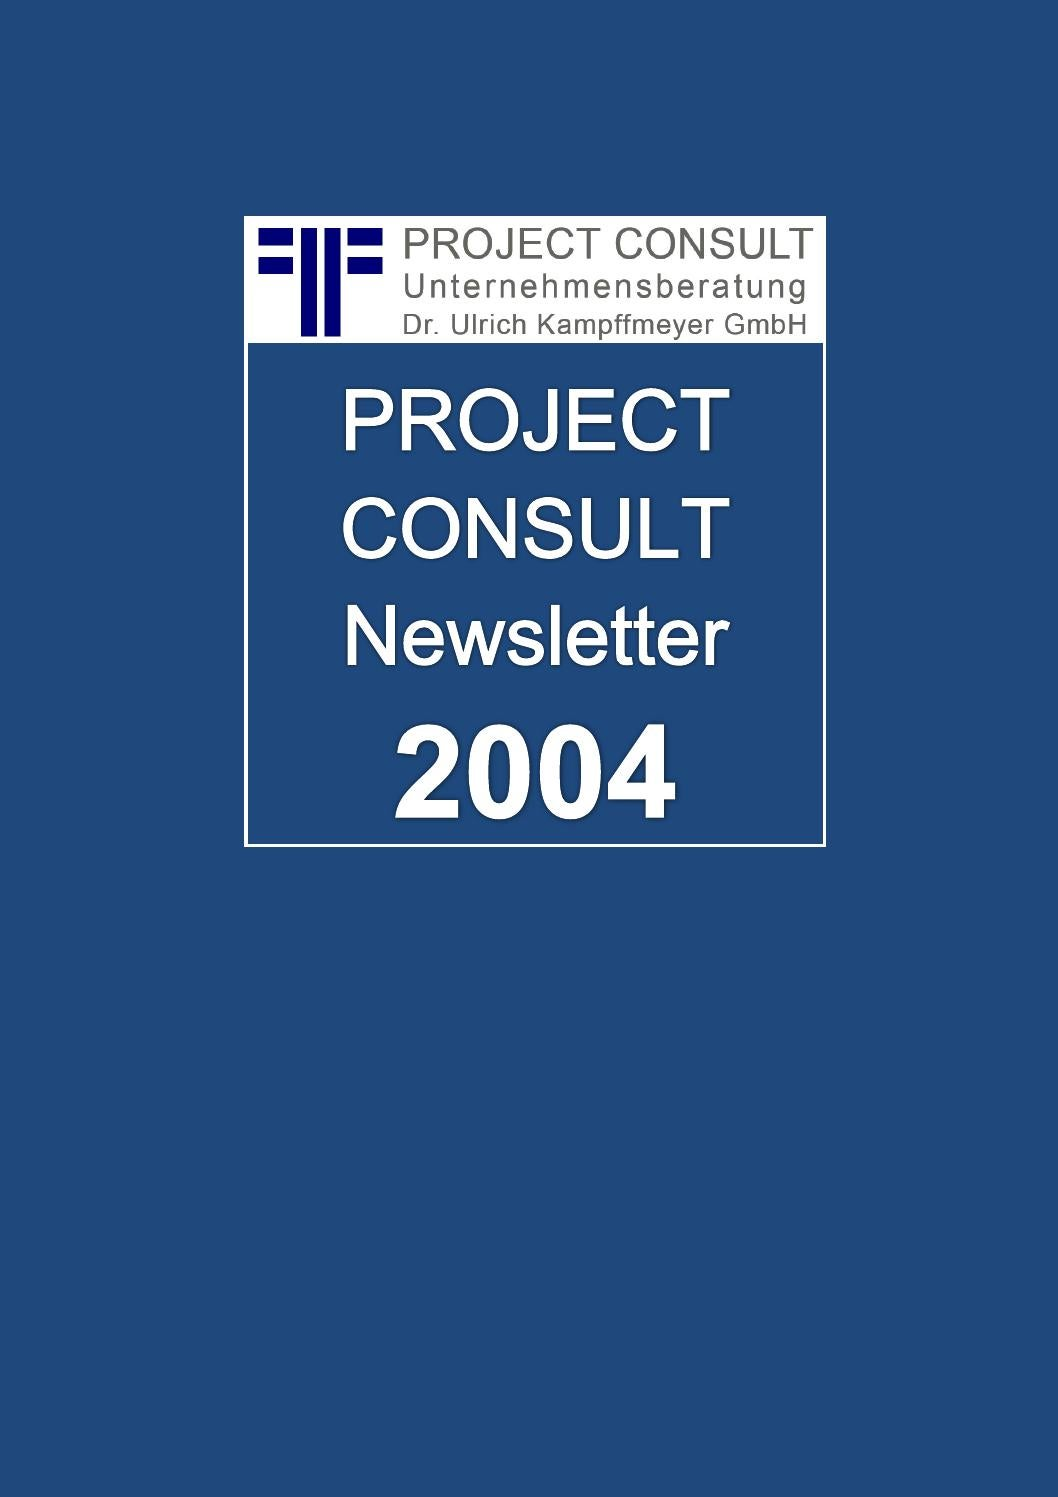 DE] PROJECT CONSULT Newsletter 2004 | PROJECT CONSULT ...